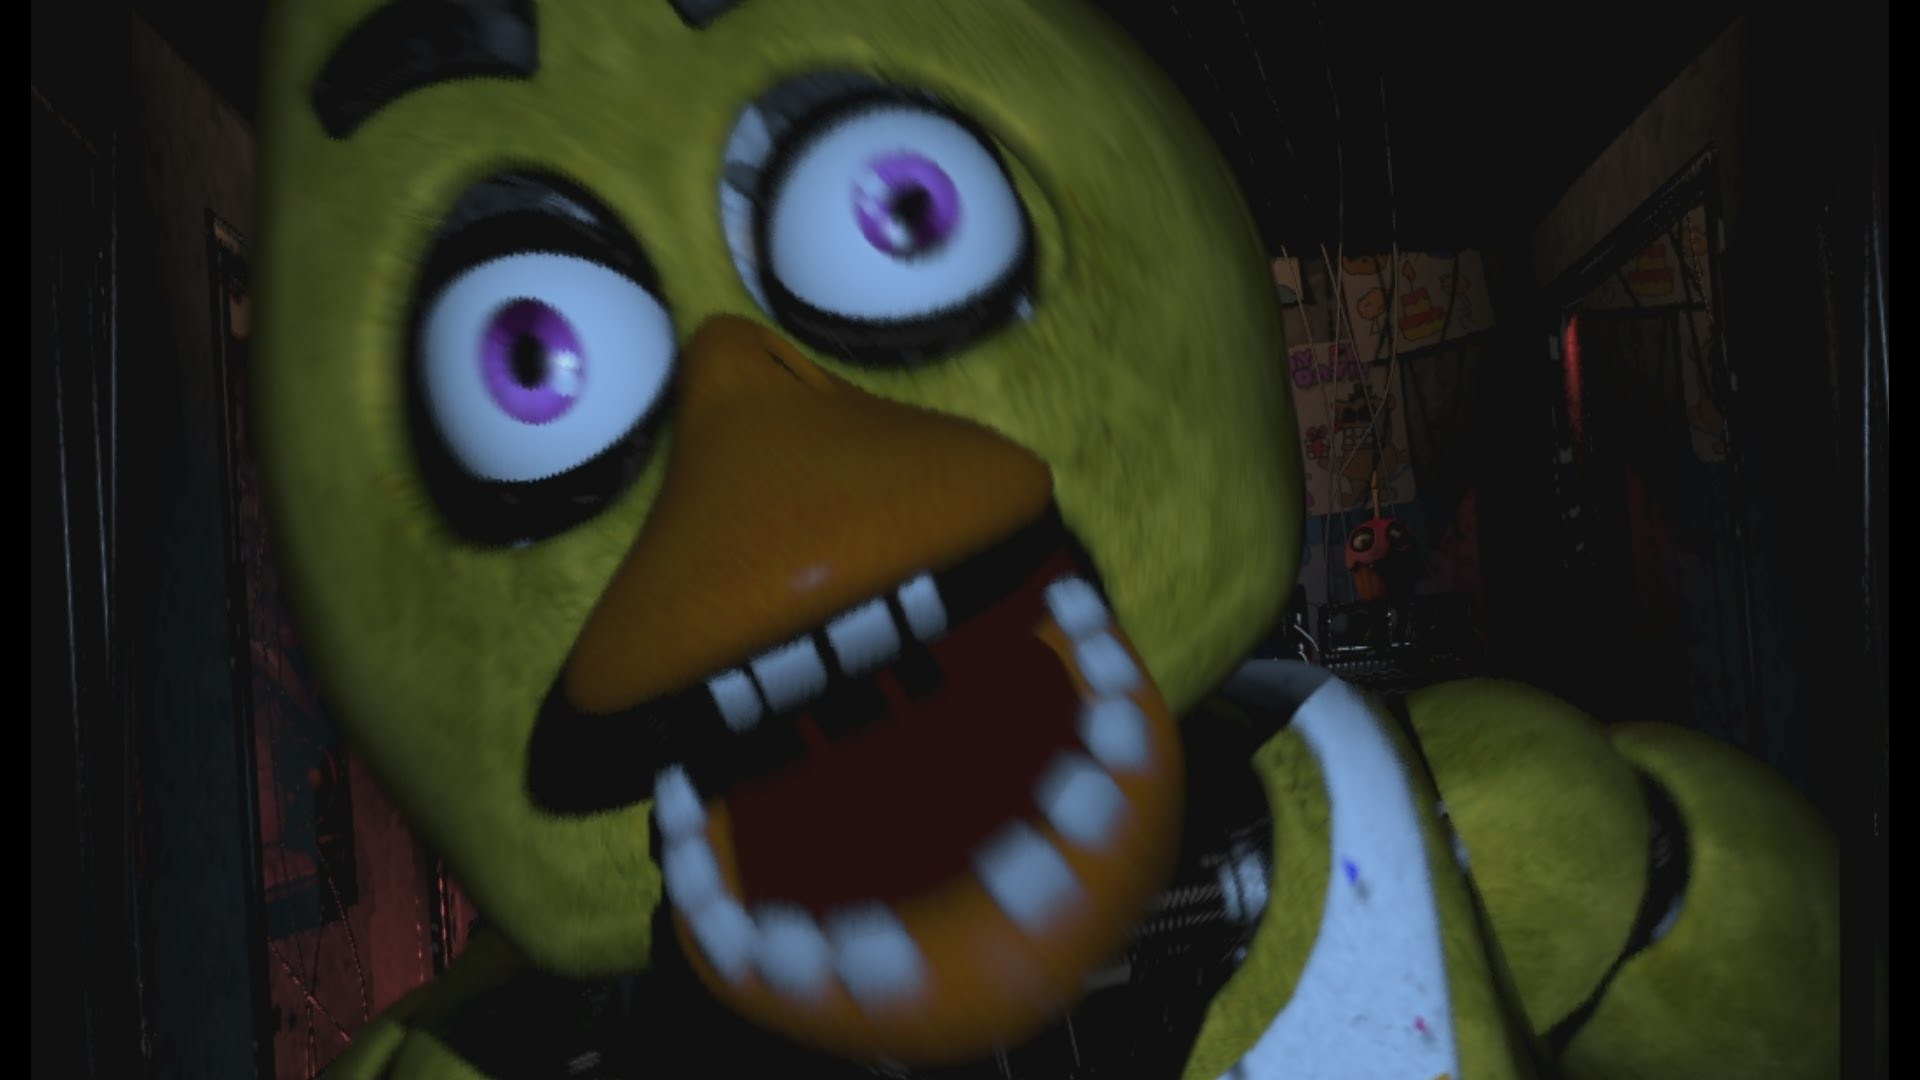 Five nights at freddys jumpscare gif